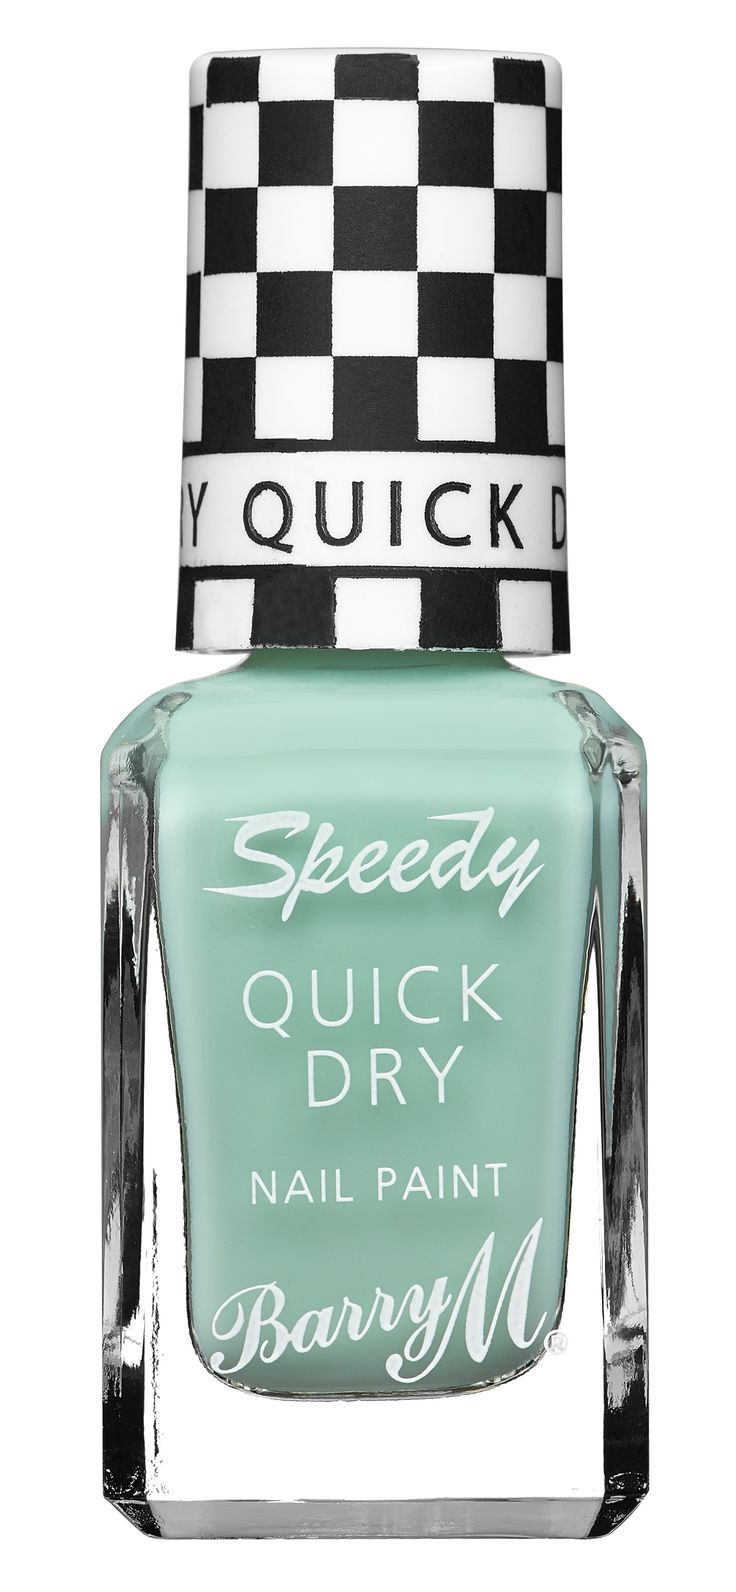 Barry M Speedy Quick Dry Nail Paint Pole Position.